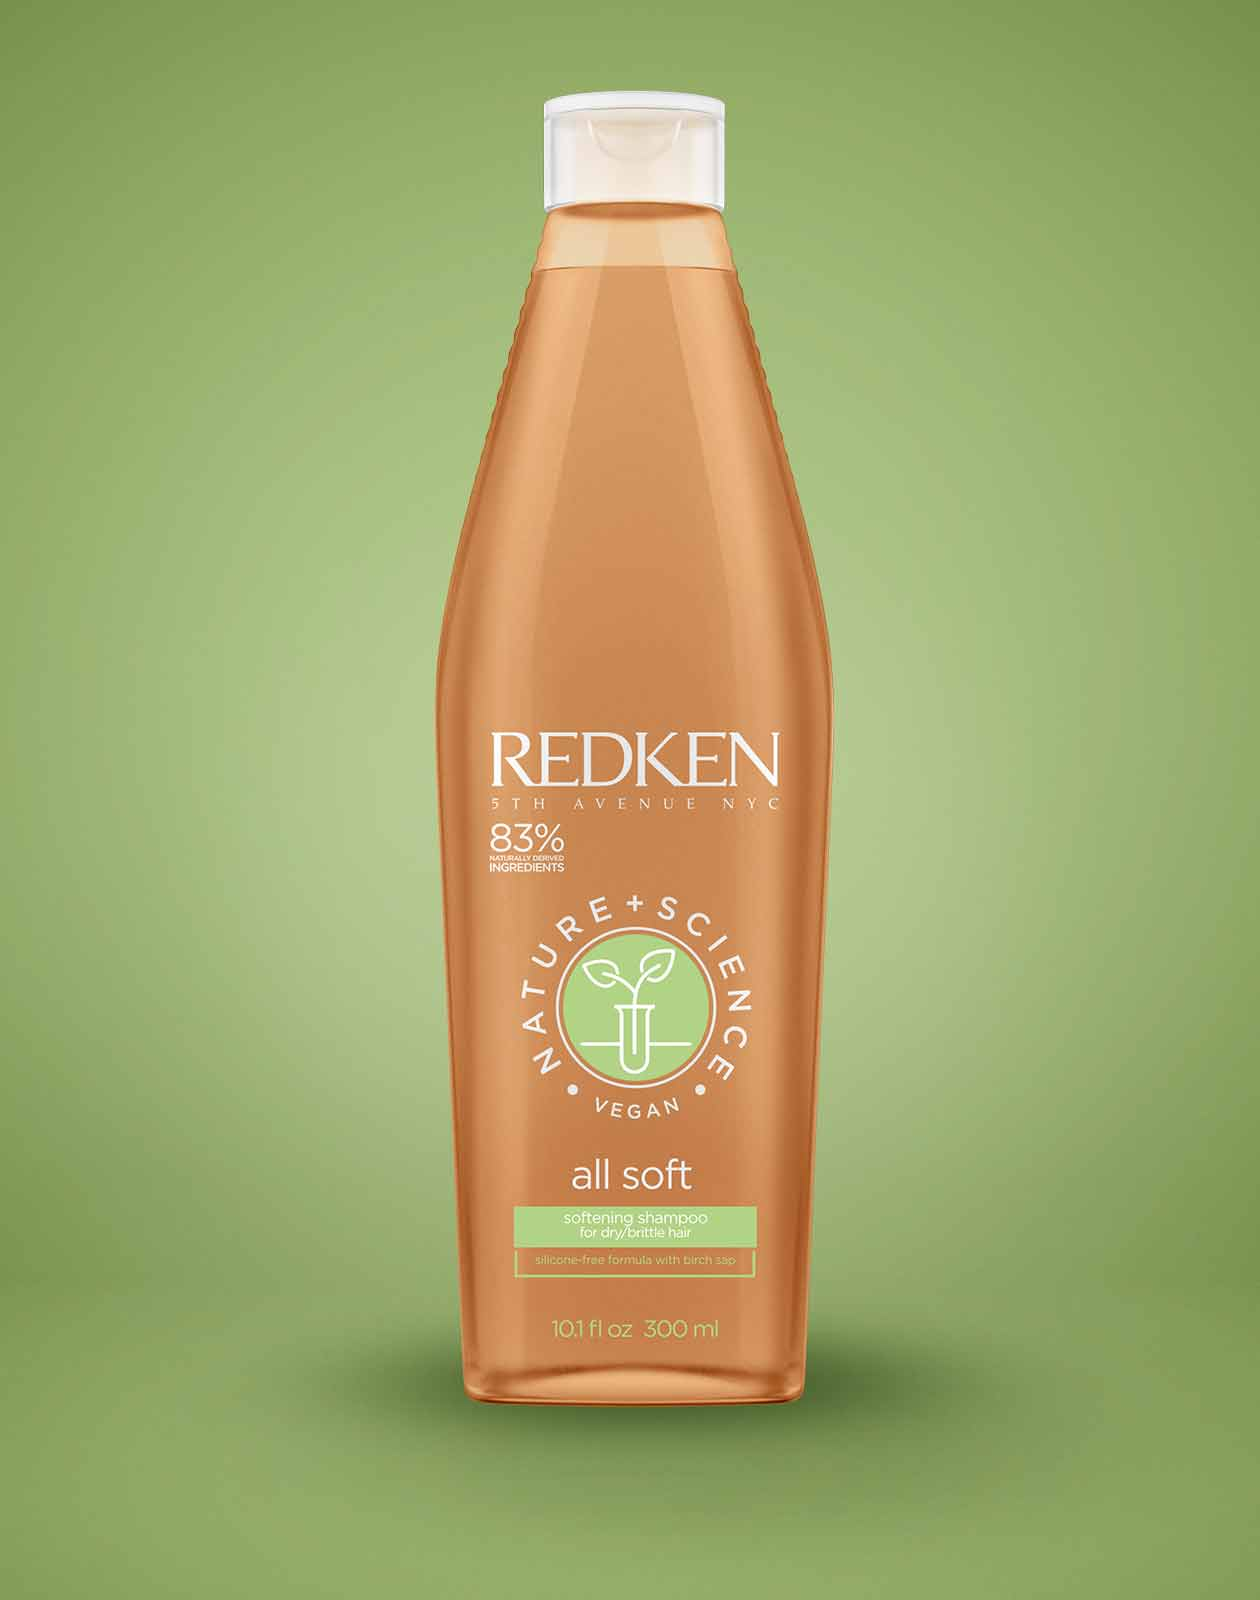 Redken 2018 Product Nature Science 1260x1600 All Soft Shampoo Green.jpg